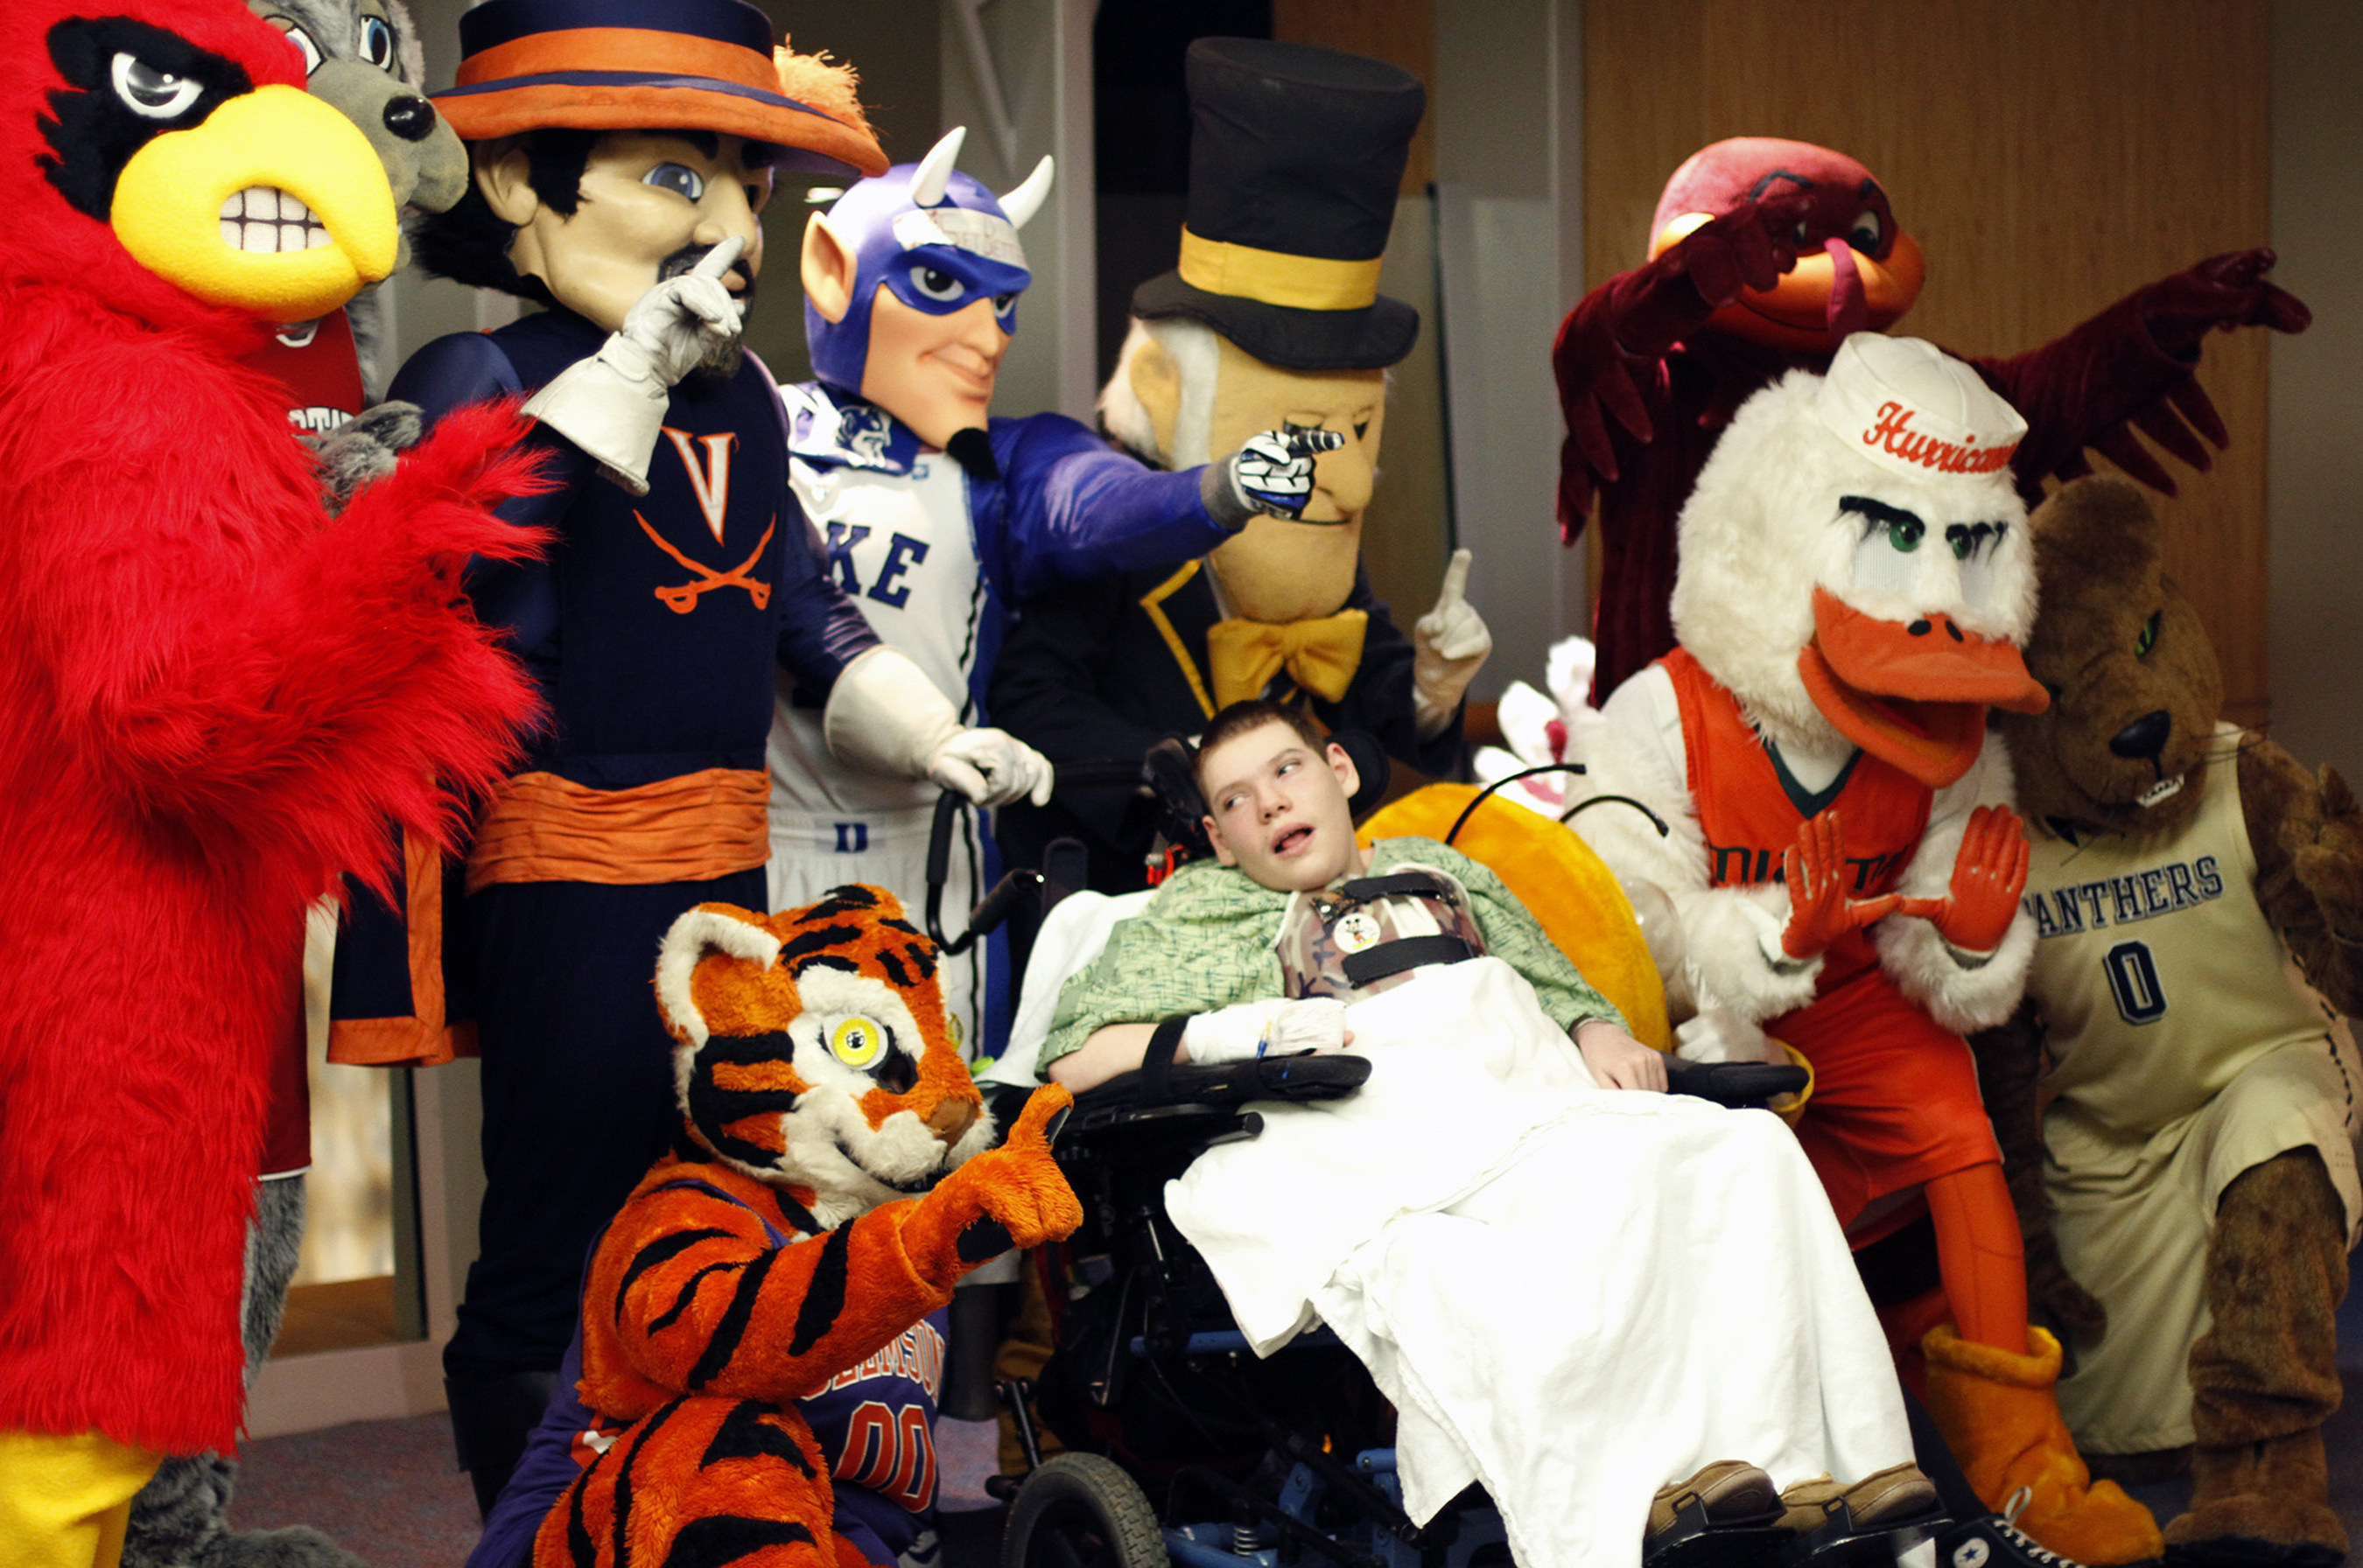 A huge basketball fan, sixteen-year-old Ryan Shelton had a great time meeting all of the ACC mascots. The mascots visited Brenner Children's Hospital as part of an outreach initiative for the 2015 ACC Men's Basketball Tournament.